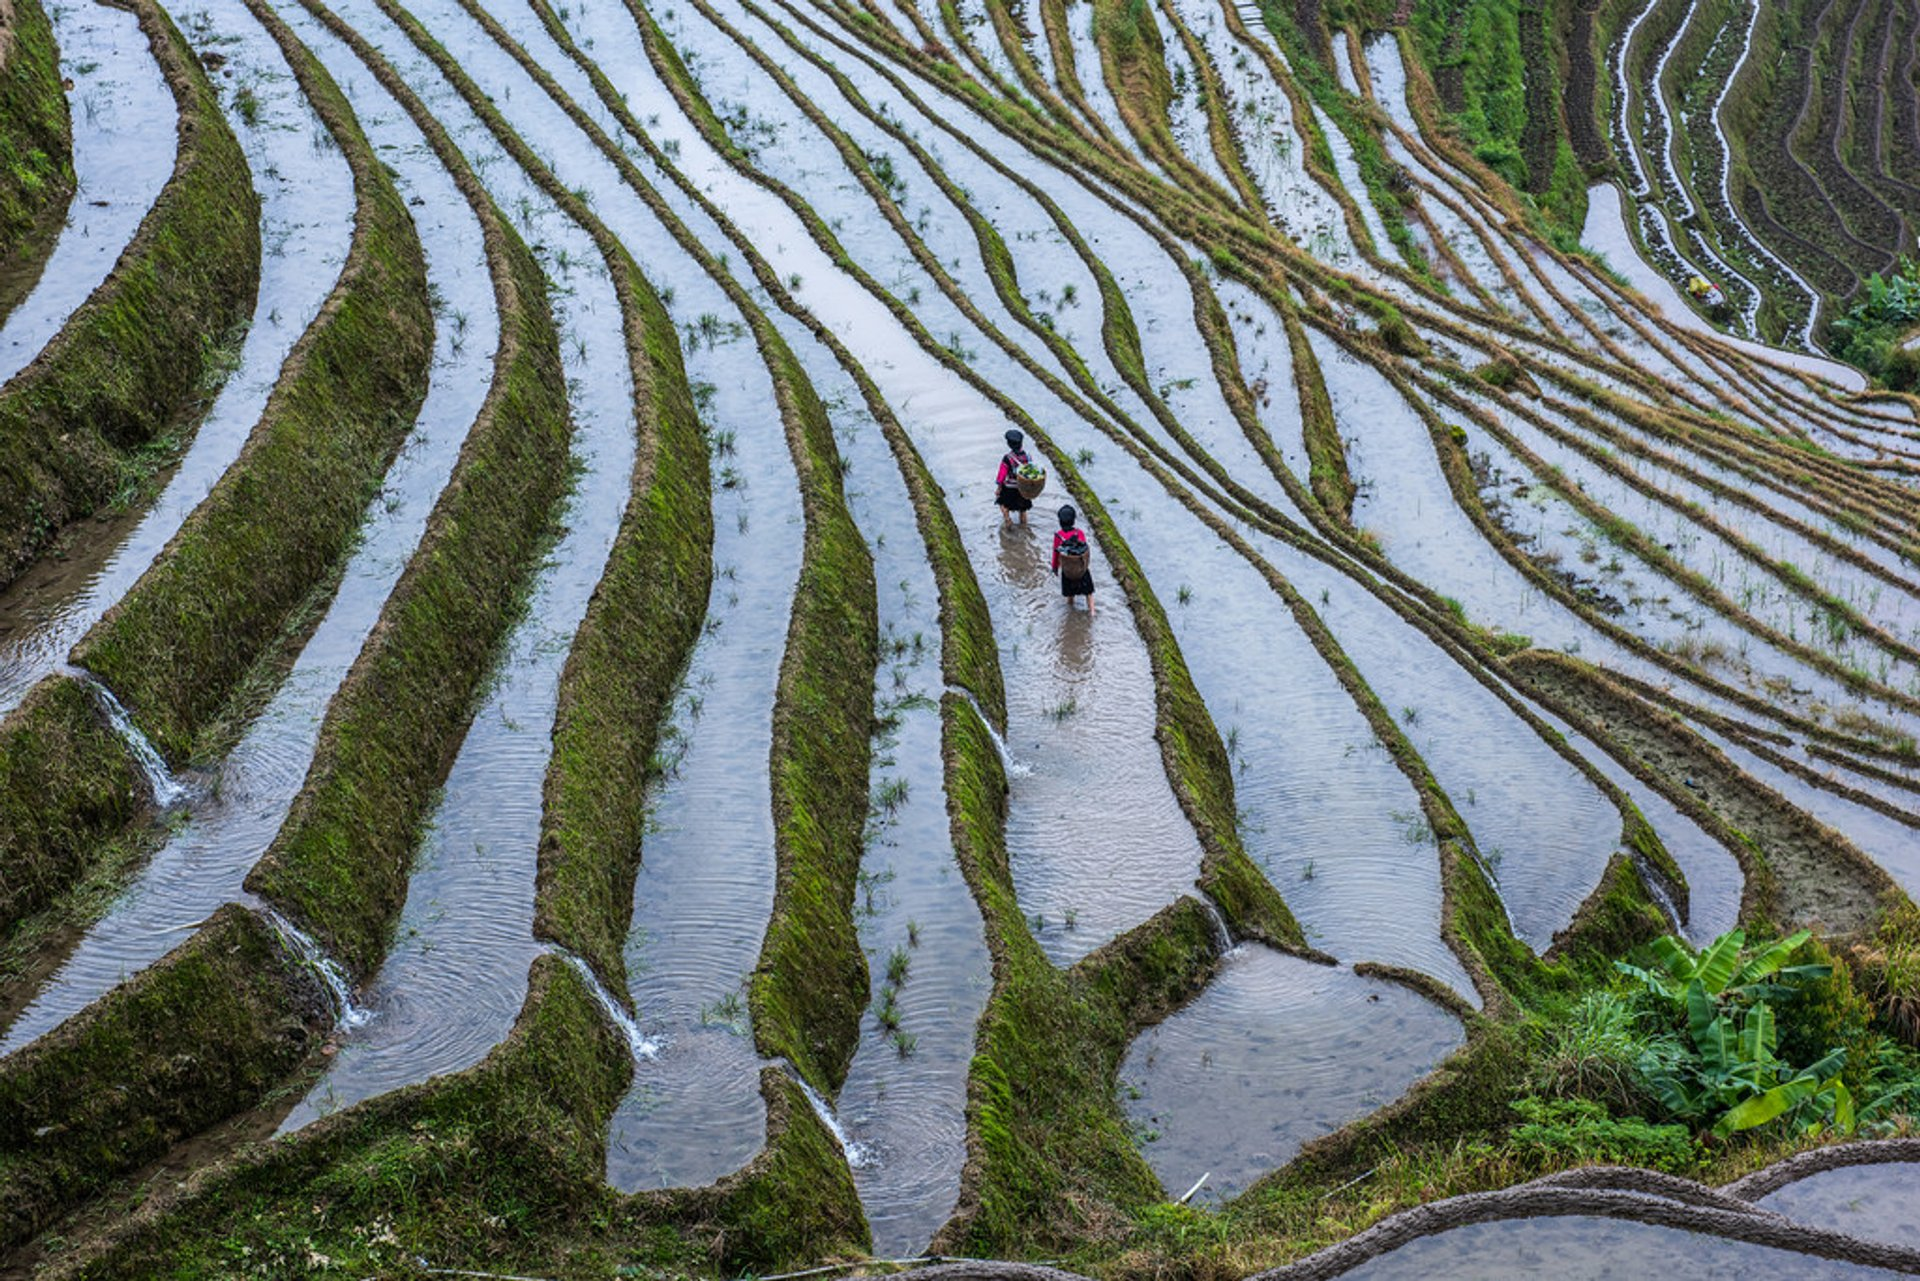 Best time for Longsheng (Longji) Rice Terraces in China 2019